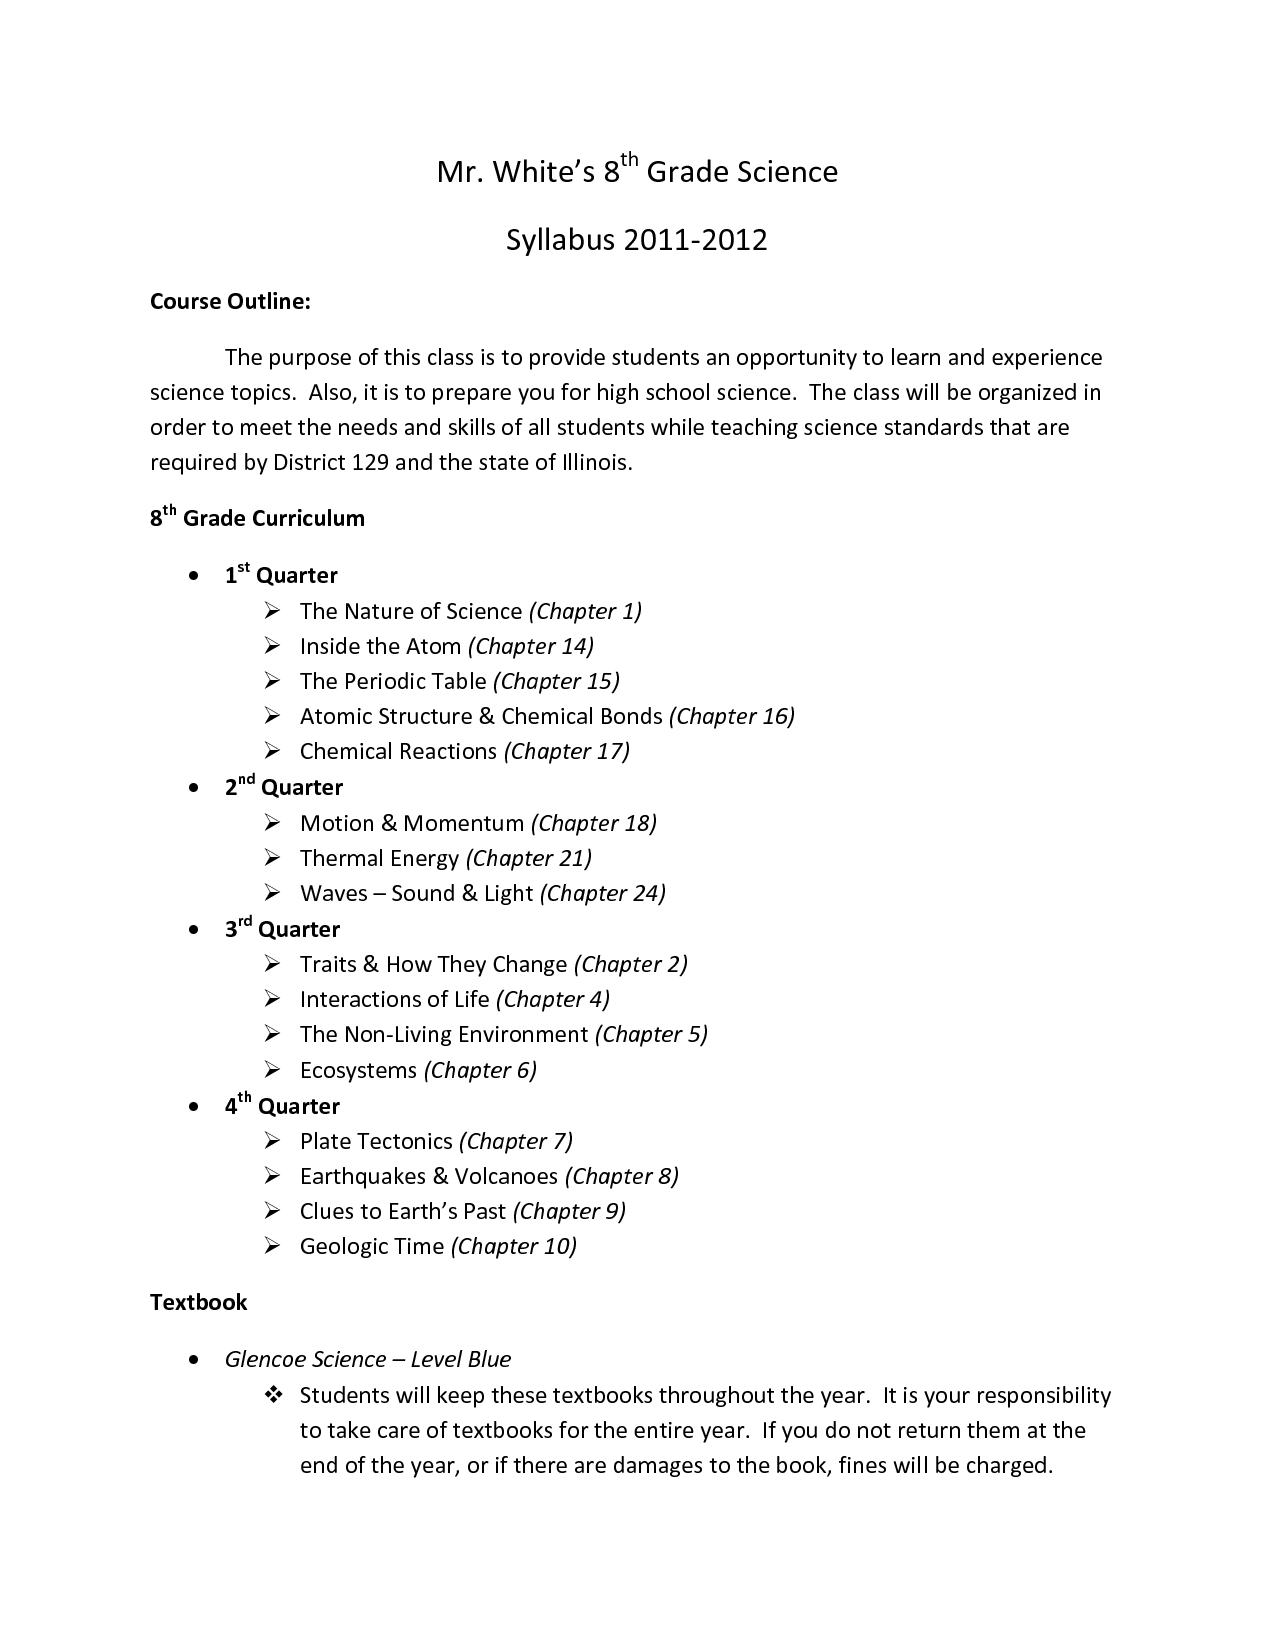 34 Note Taking Worksheet The Nature Of Science Answers